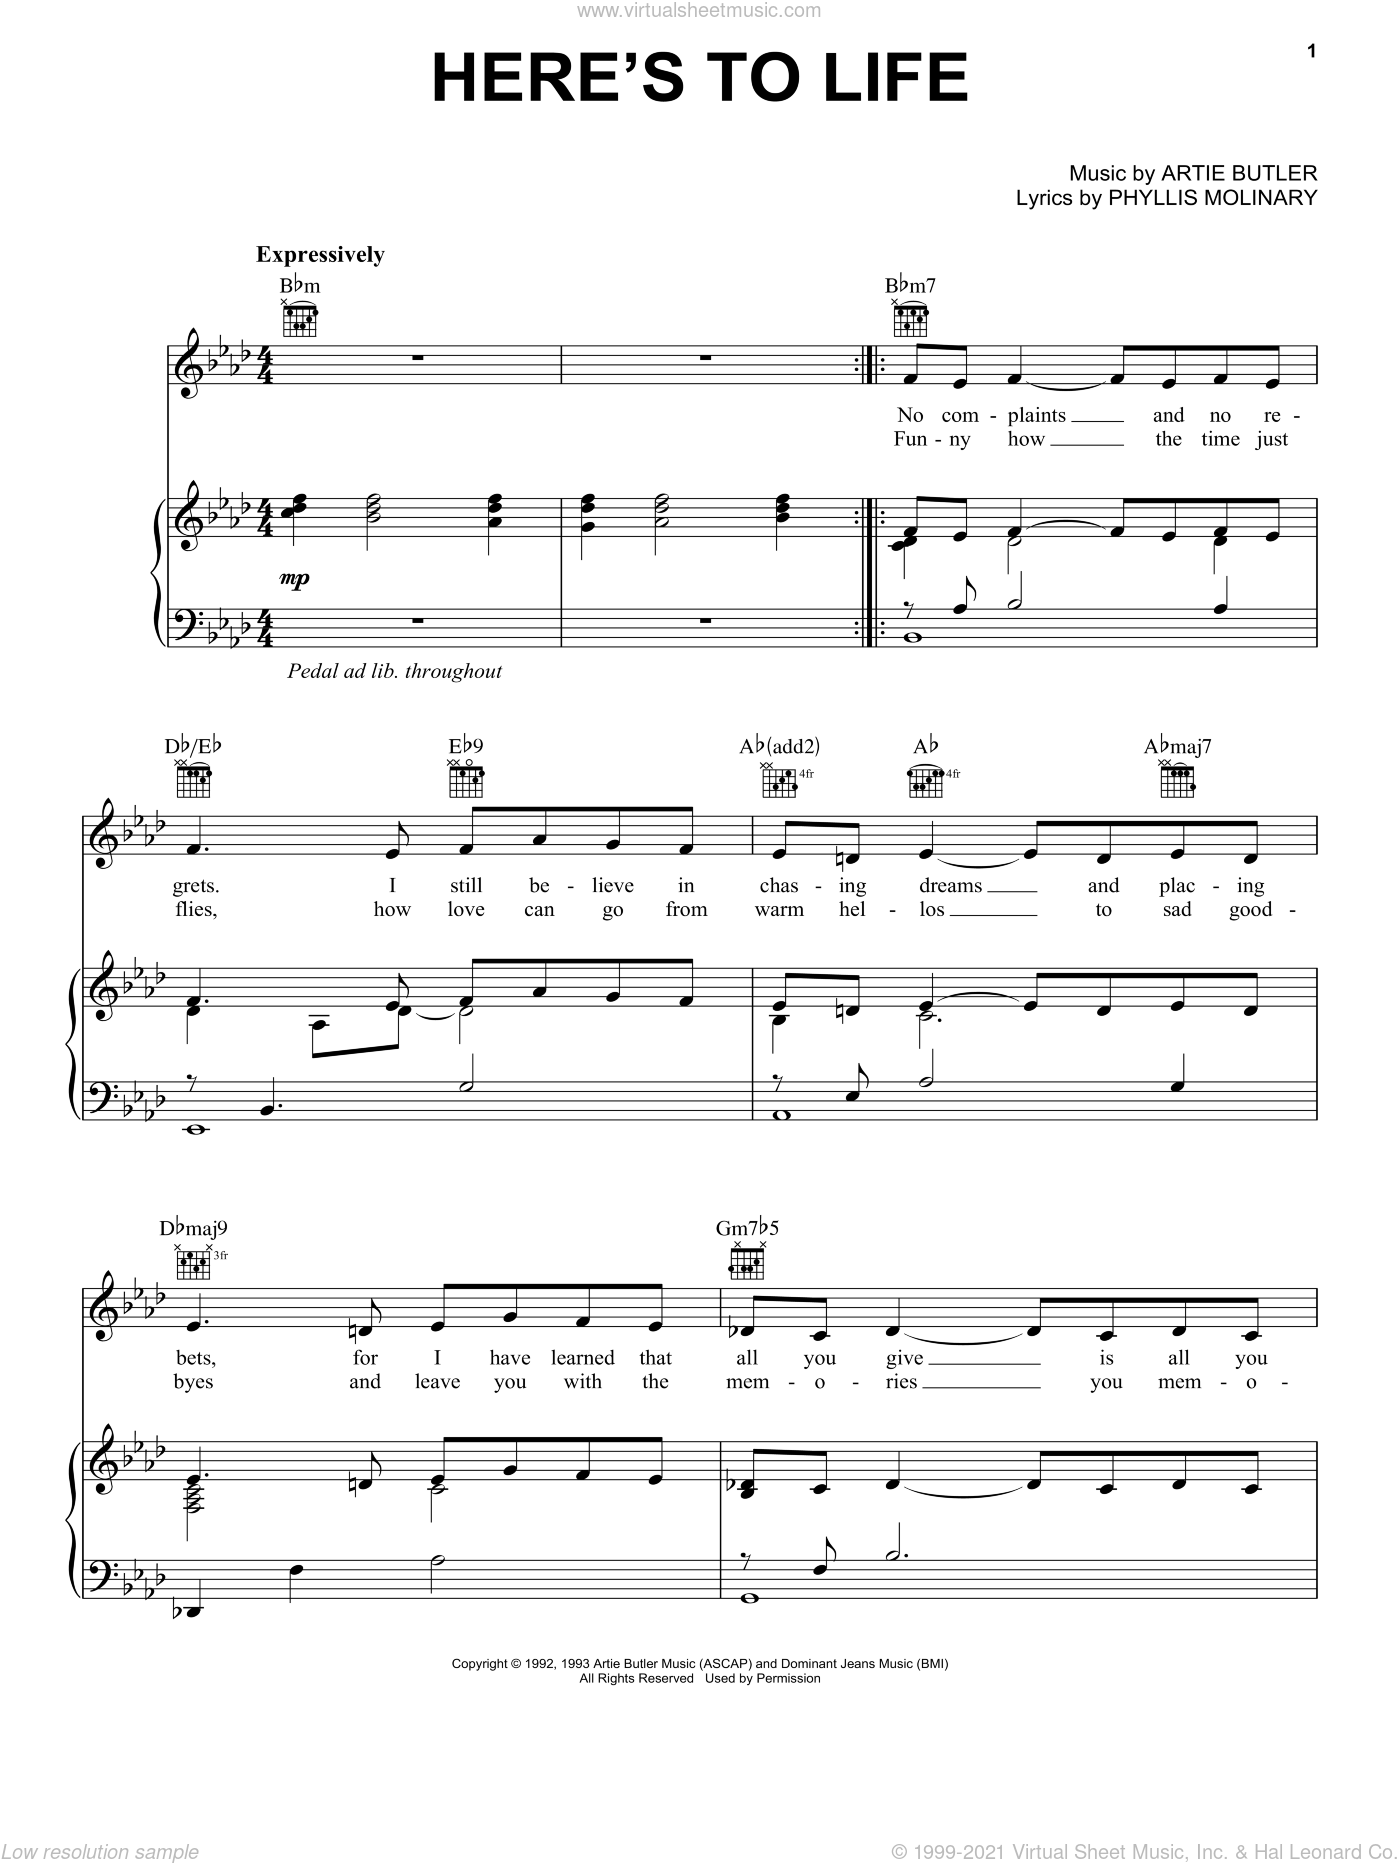 Here's To Life sheet music for voice, piano or guitar by Shirley Horn, Artie Butler and Phyllis Molinary, intermediate skill level